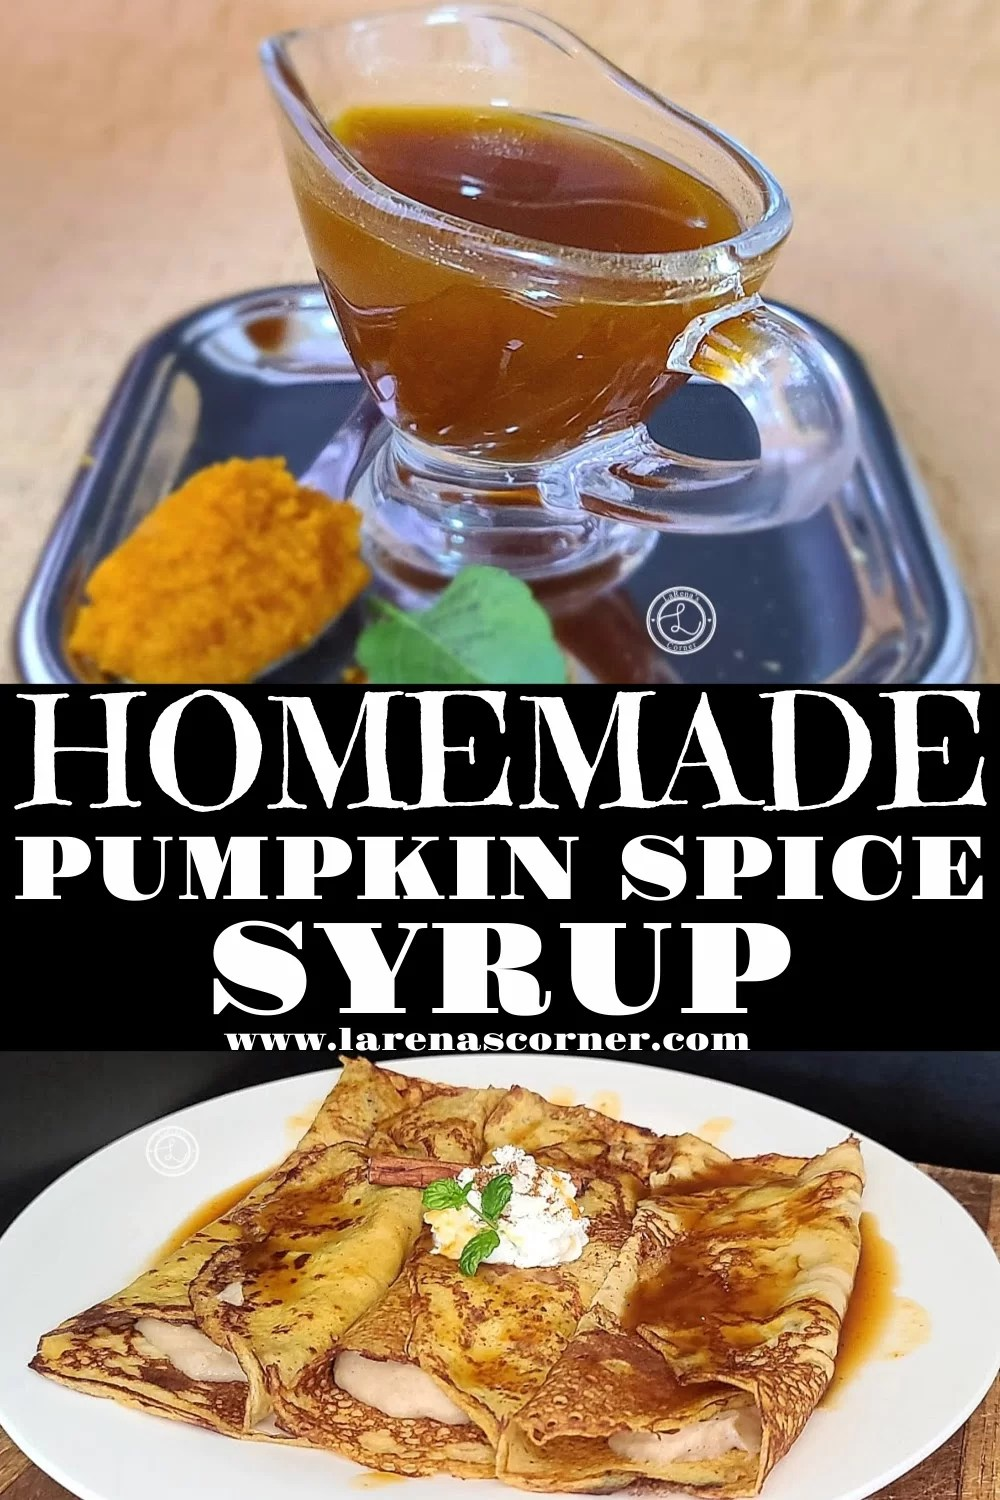 Homemade Pumpkin Spice Syrup. Two pictures. One of the syrup in a serving container. Another one of the syrup on top of Pumpkin Crepes